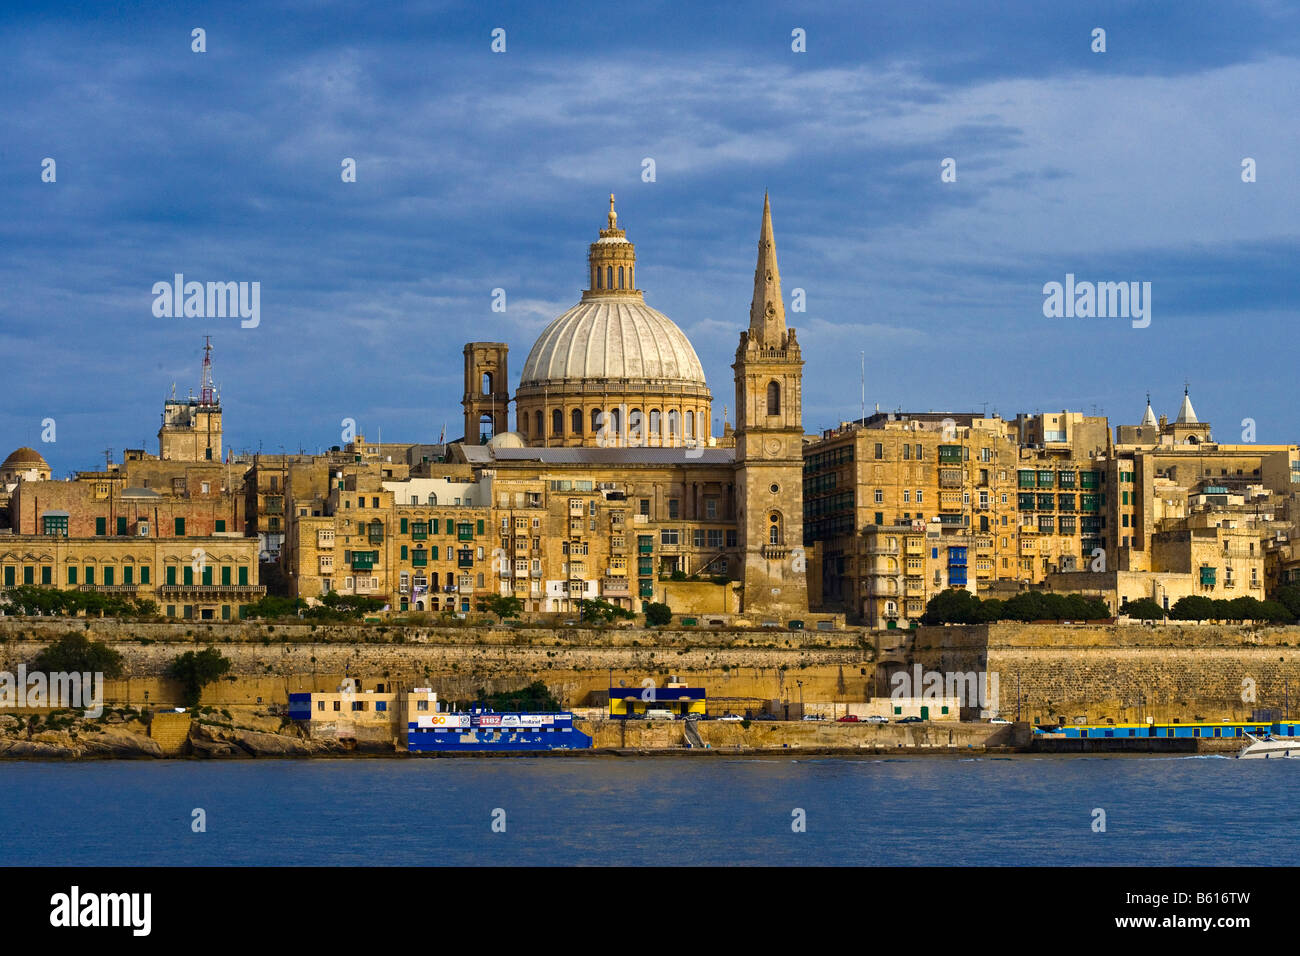 St. Paul's Anglican Cathedral, Malta, Europe - Stock Image